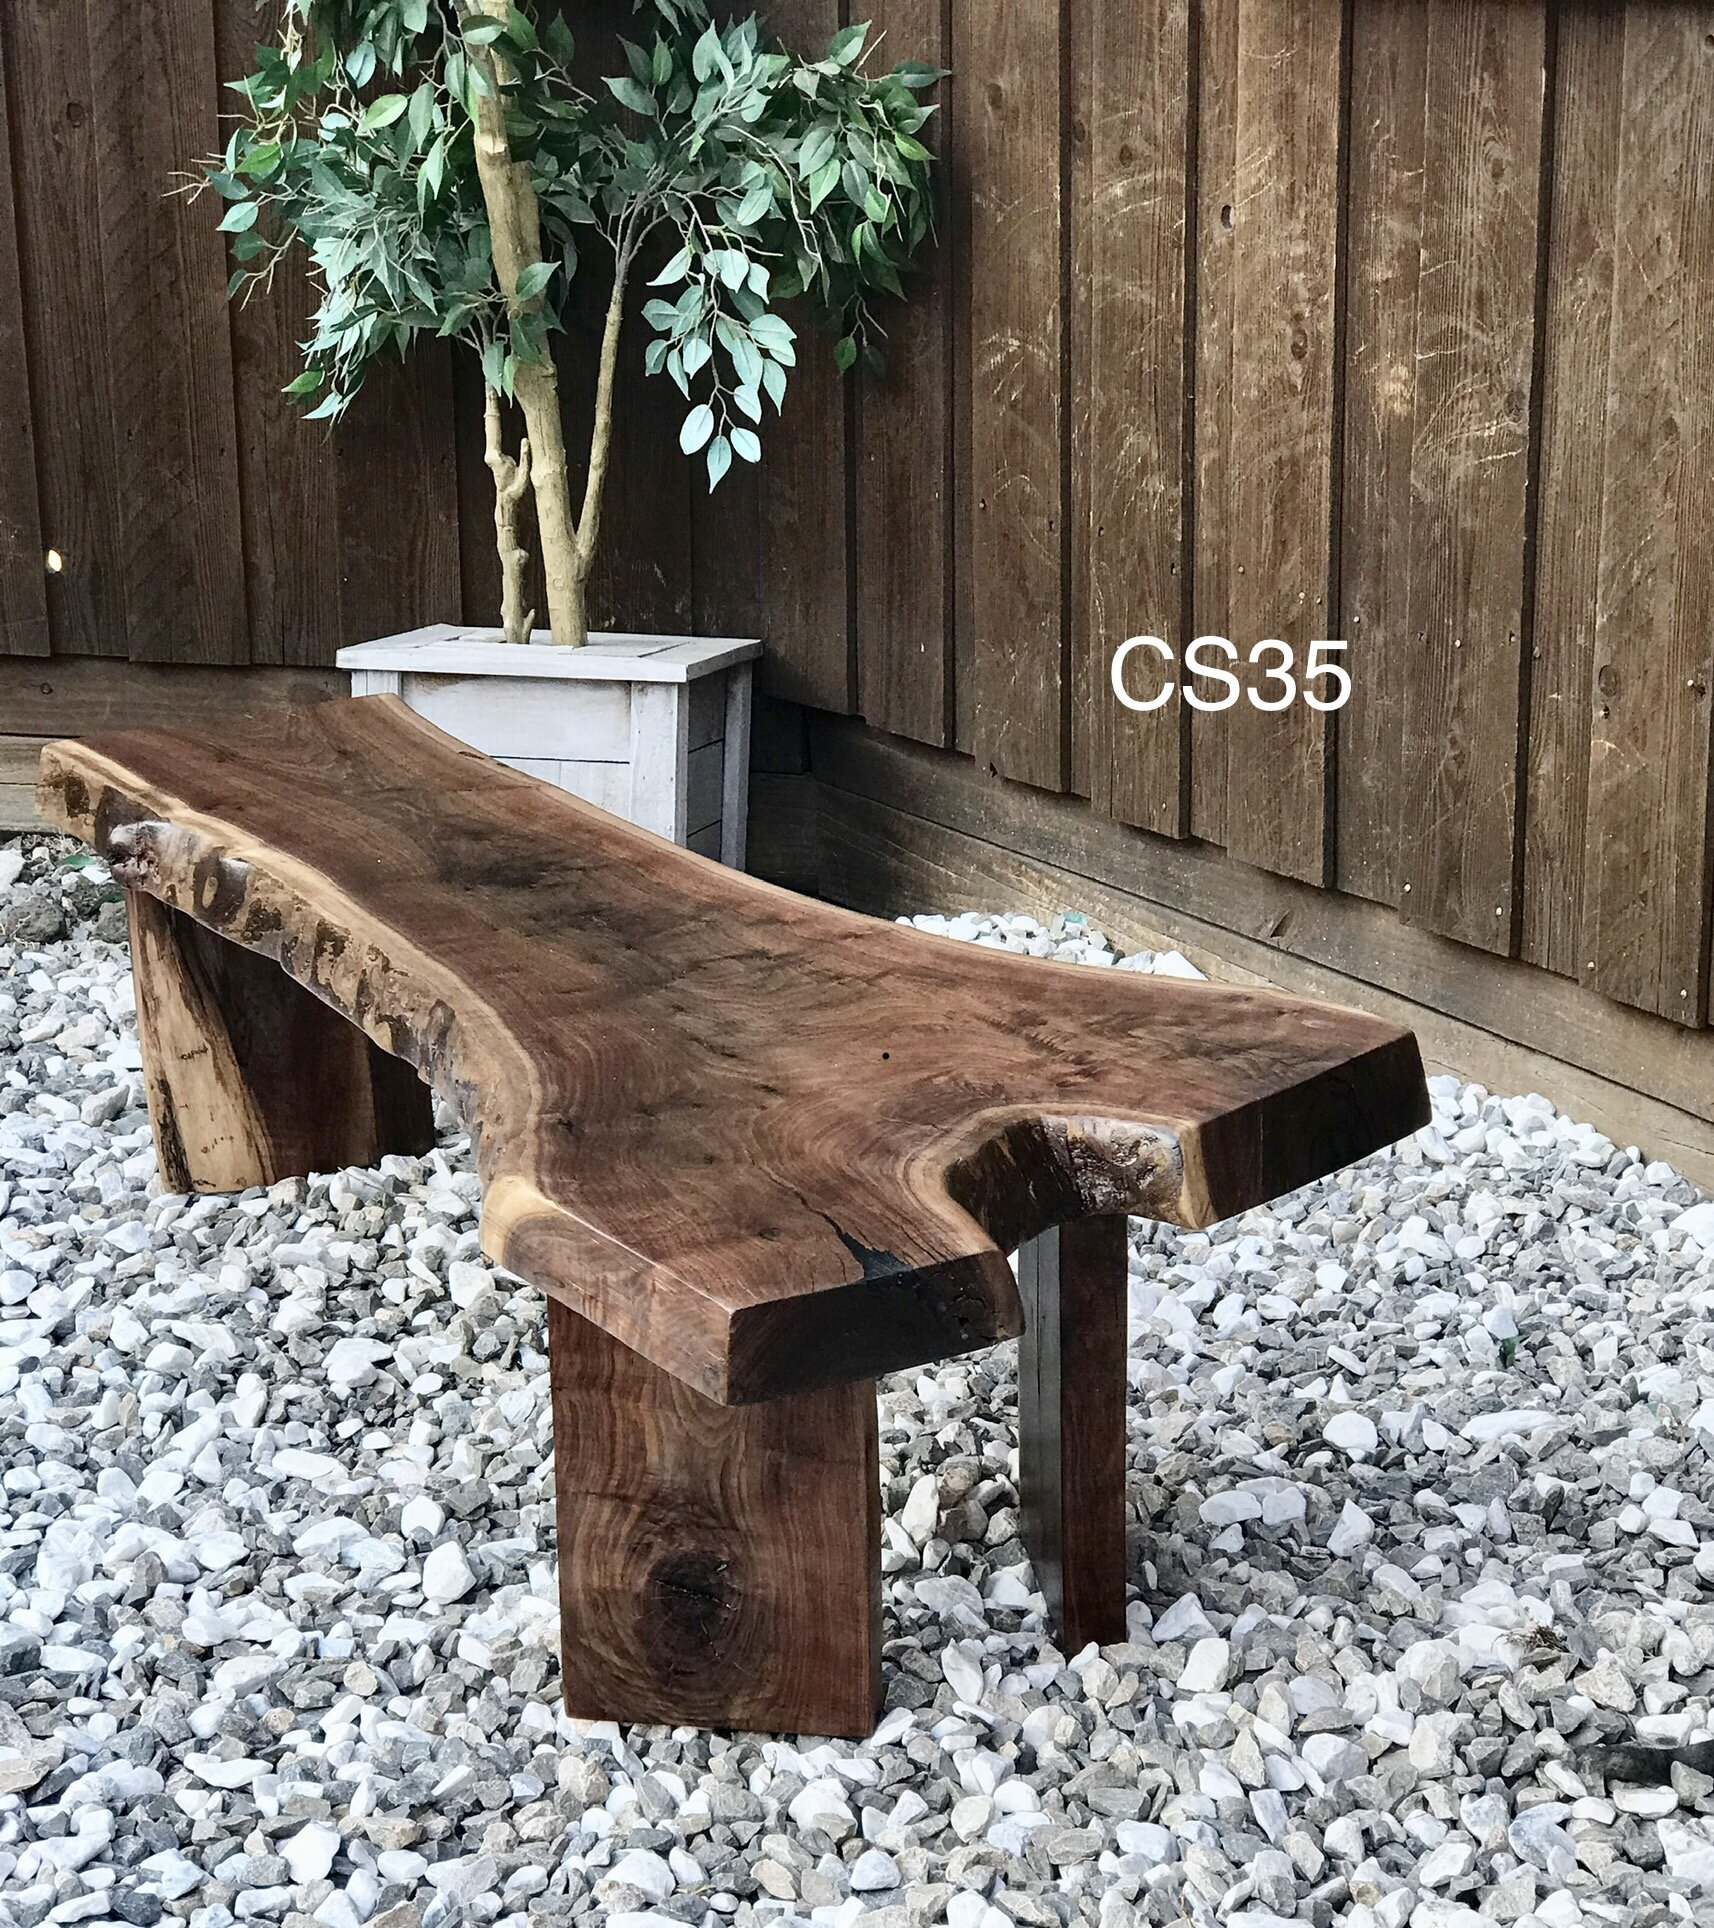 wood: WALNUT / stain: NATURAL